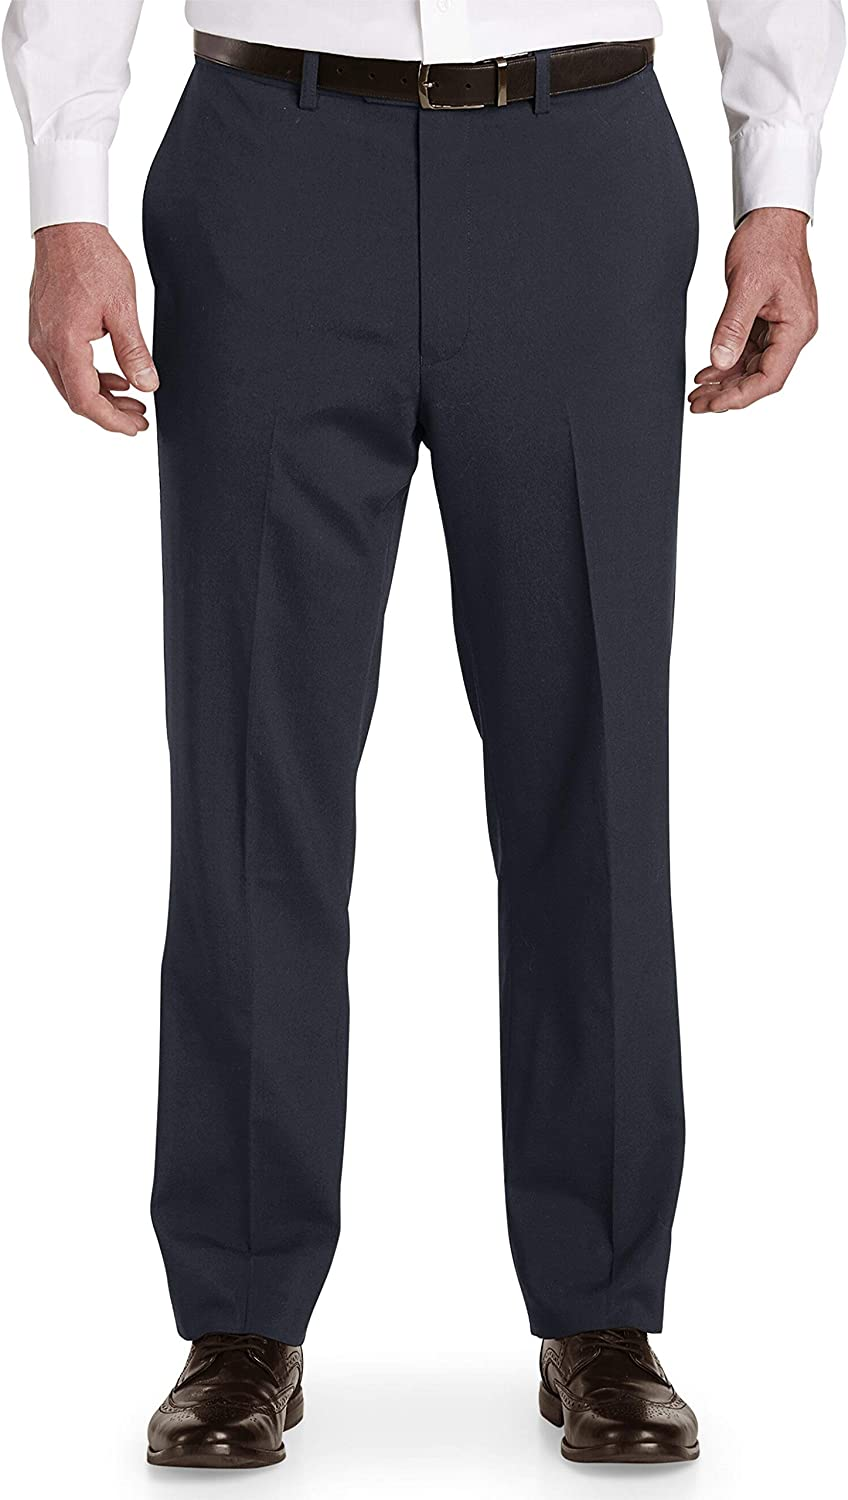 DXL Gold Series Big and Tall Waist-Relaxer Unfinished Flat-Front Suit Pants